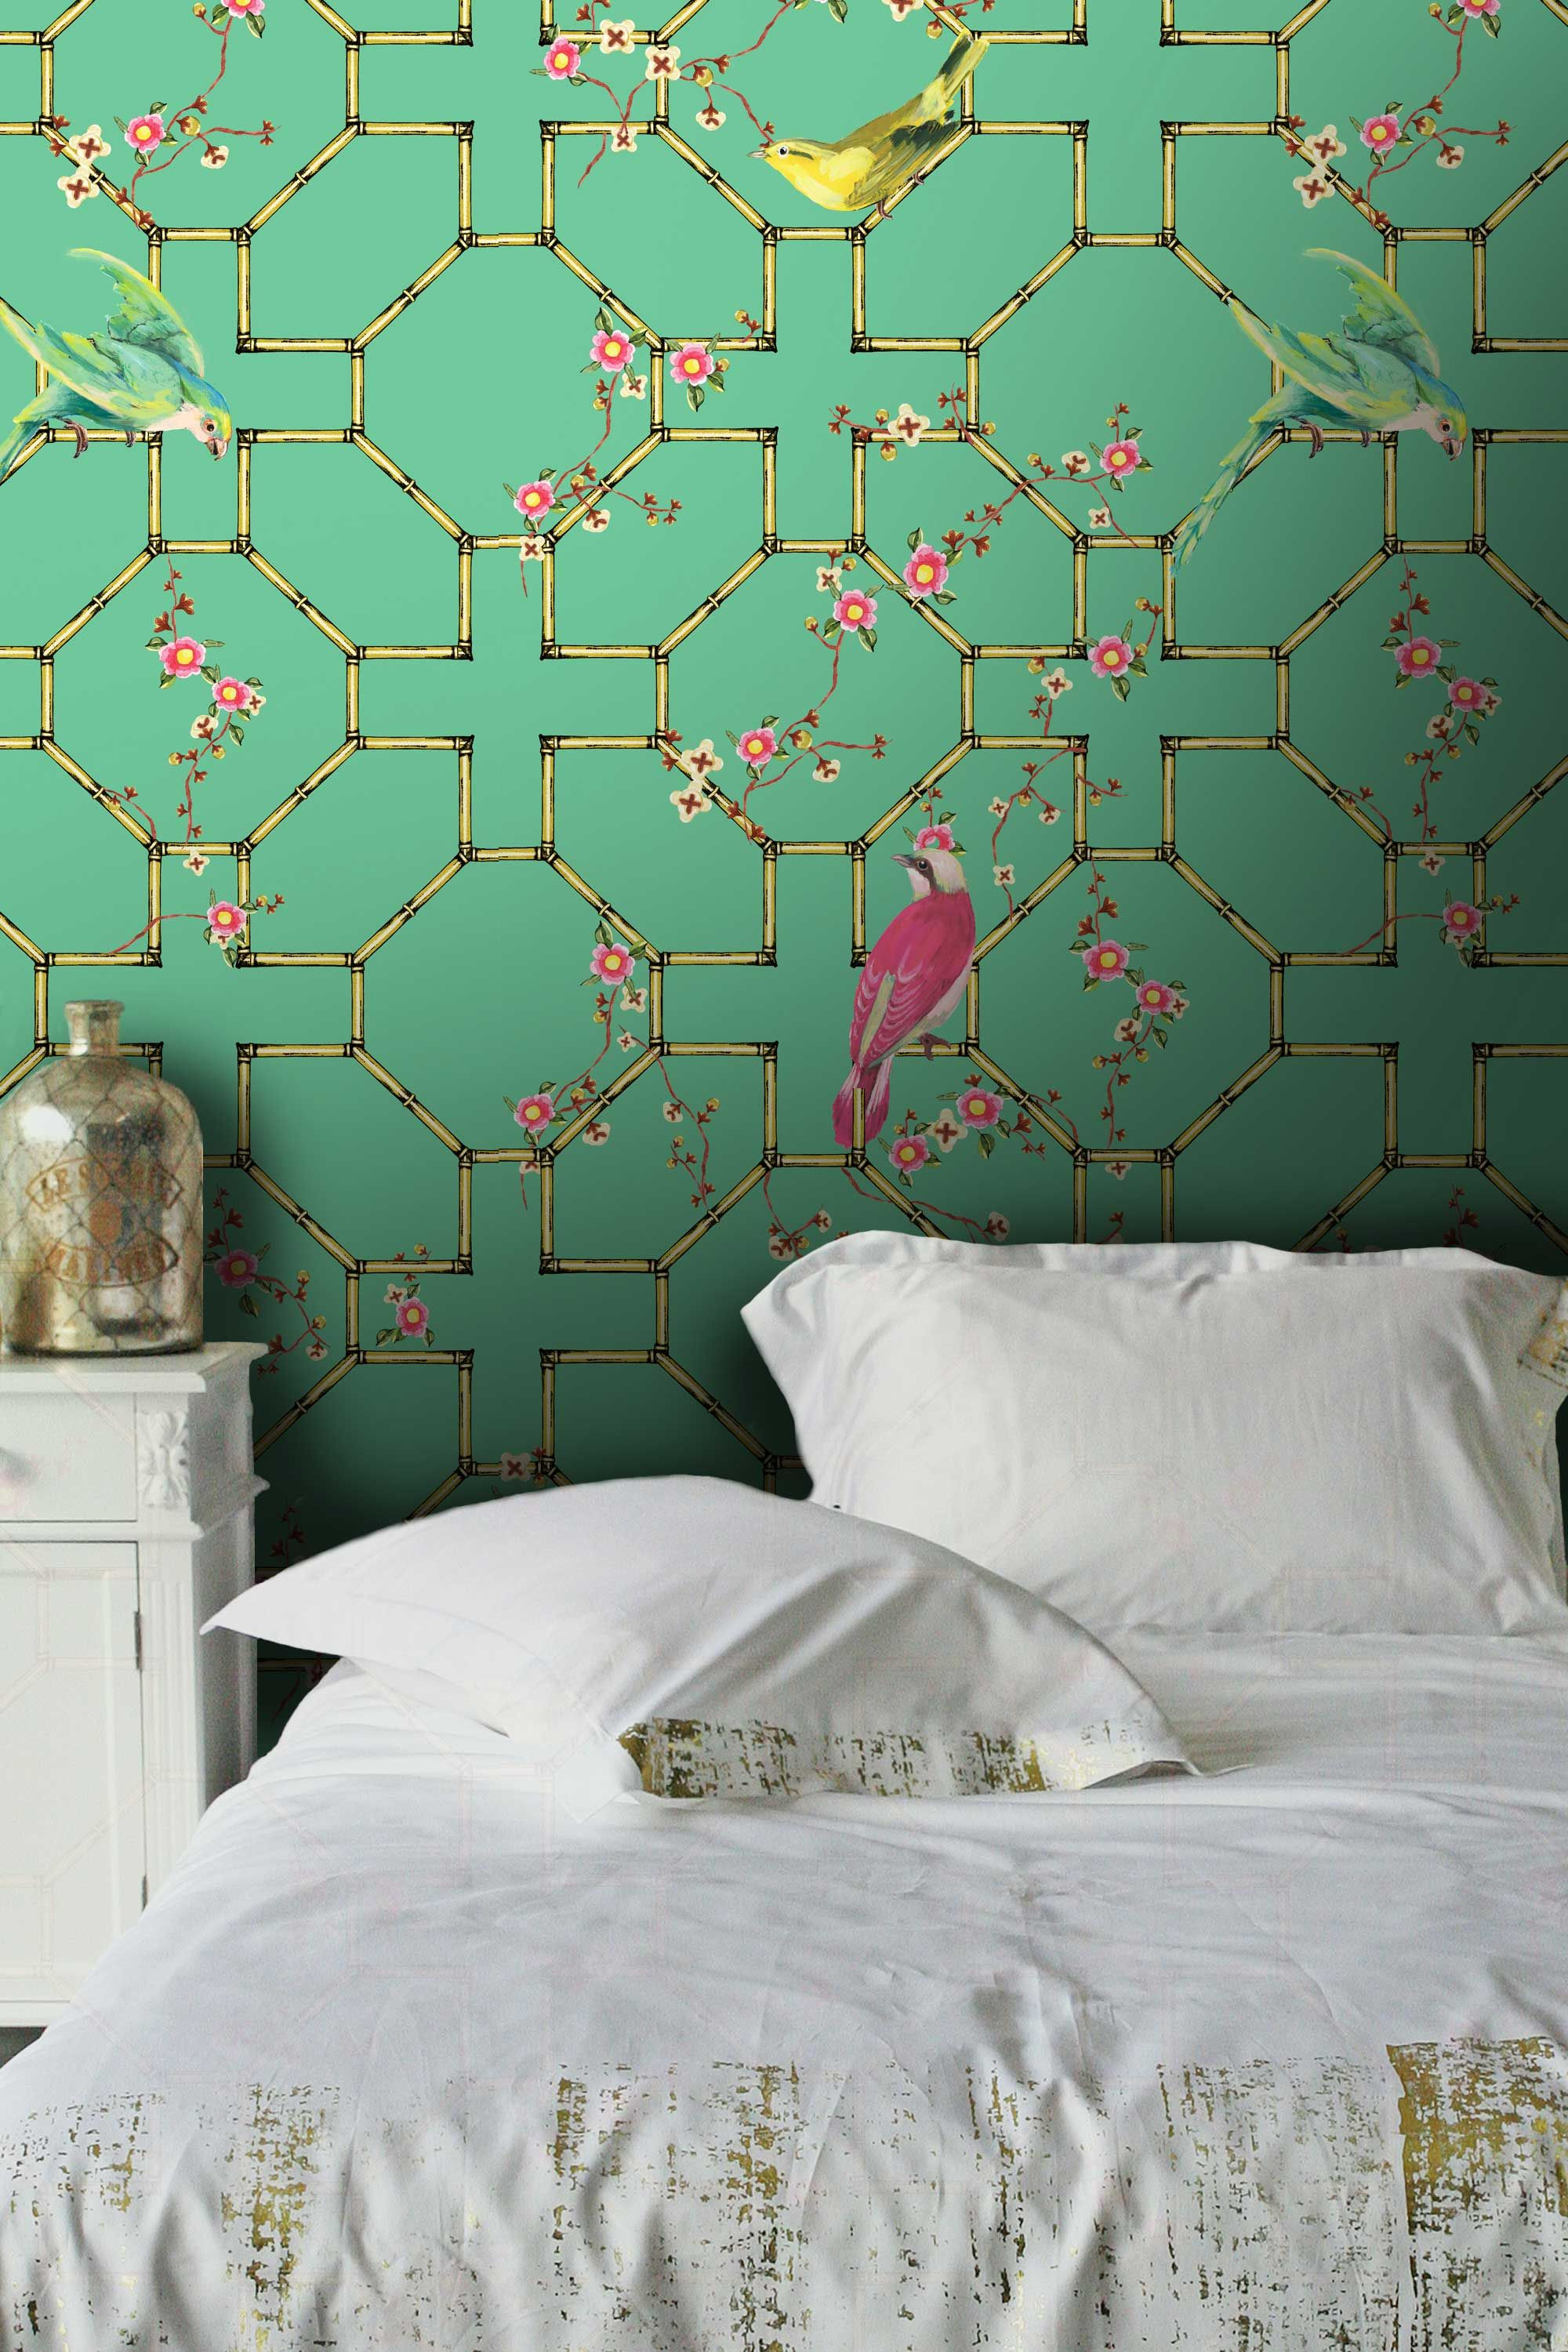 new wallpaper alert kelsey prouds designs